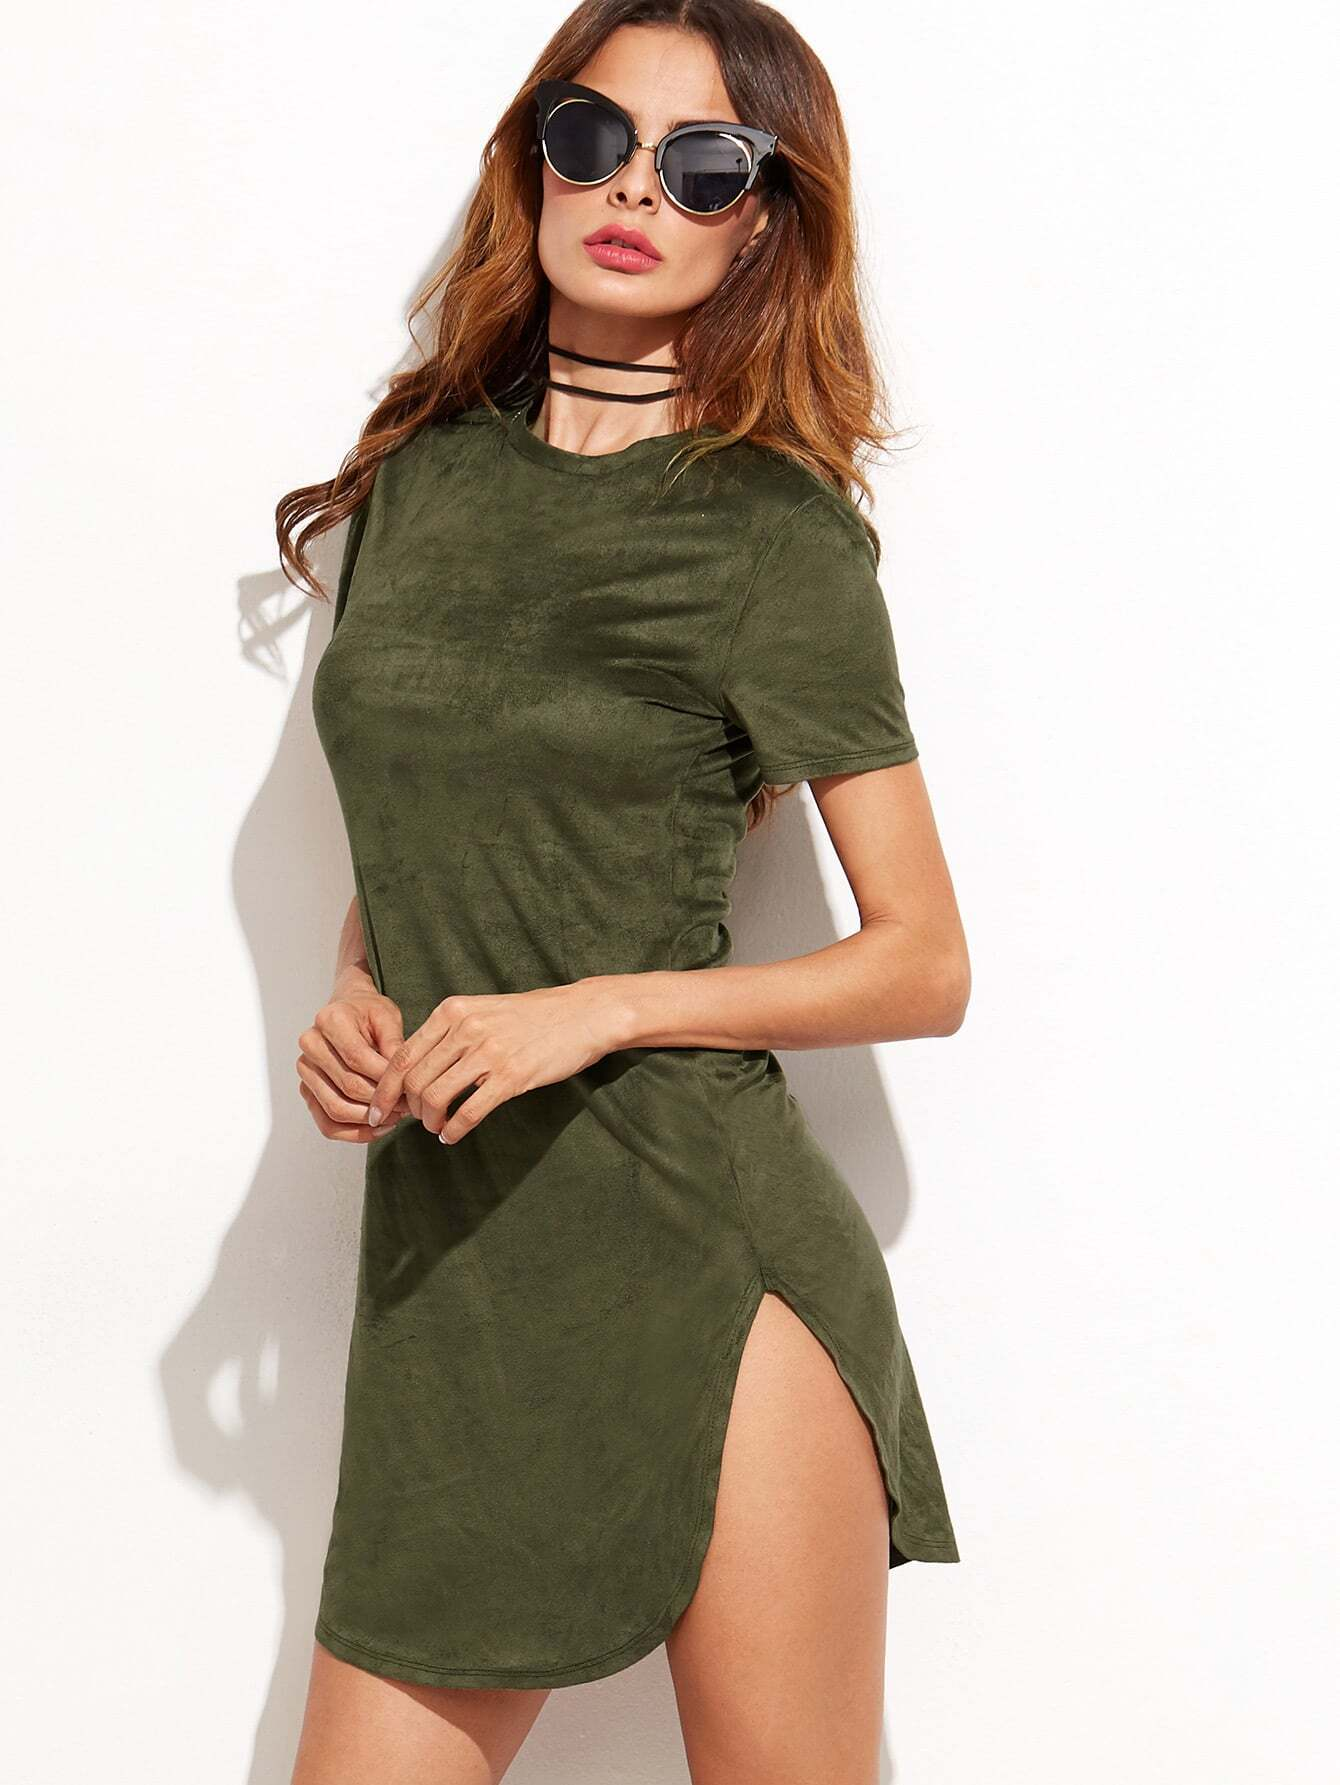 Army Green Slit Side Tee DressArmy Green Slit Side Tee Dress<br><br>color: Green<br>size: L,M,S,XS